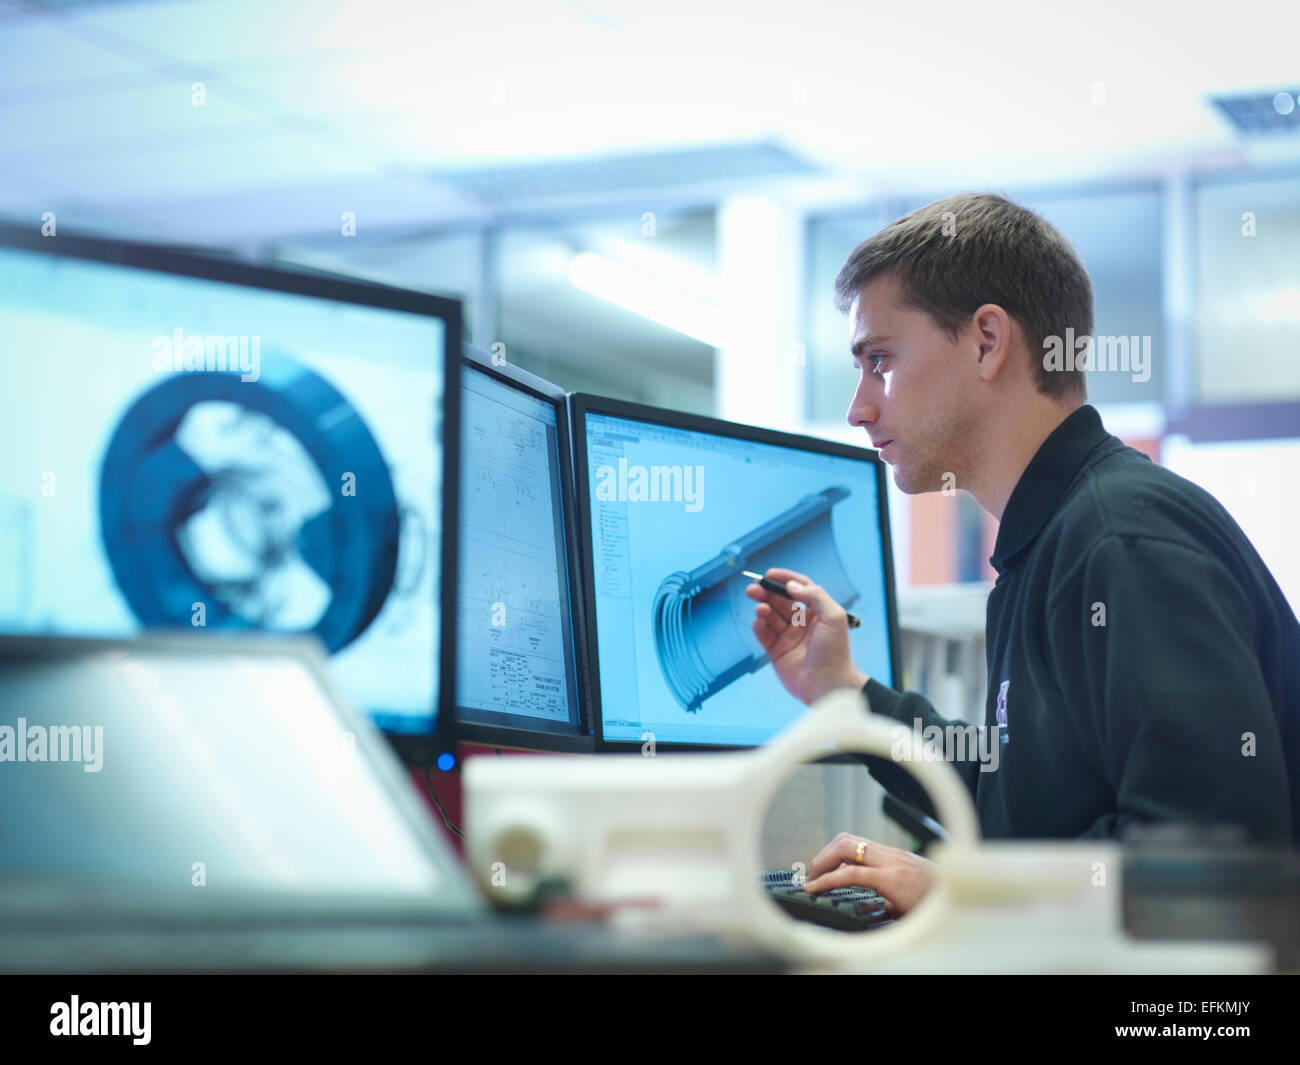 CAD designer working on engineering designs - Stock Image